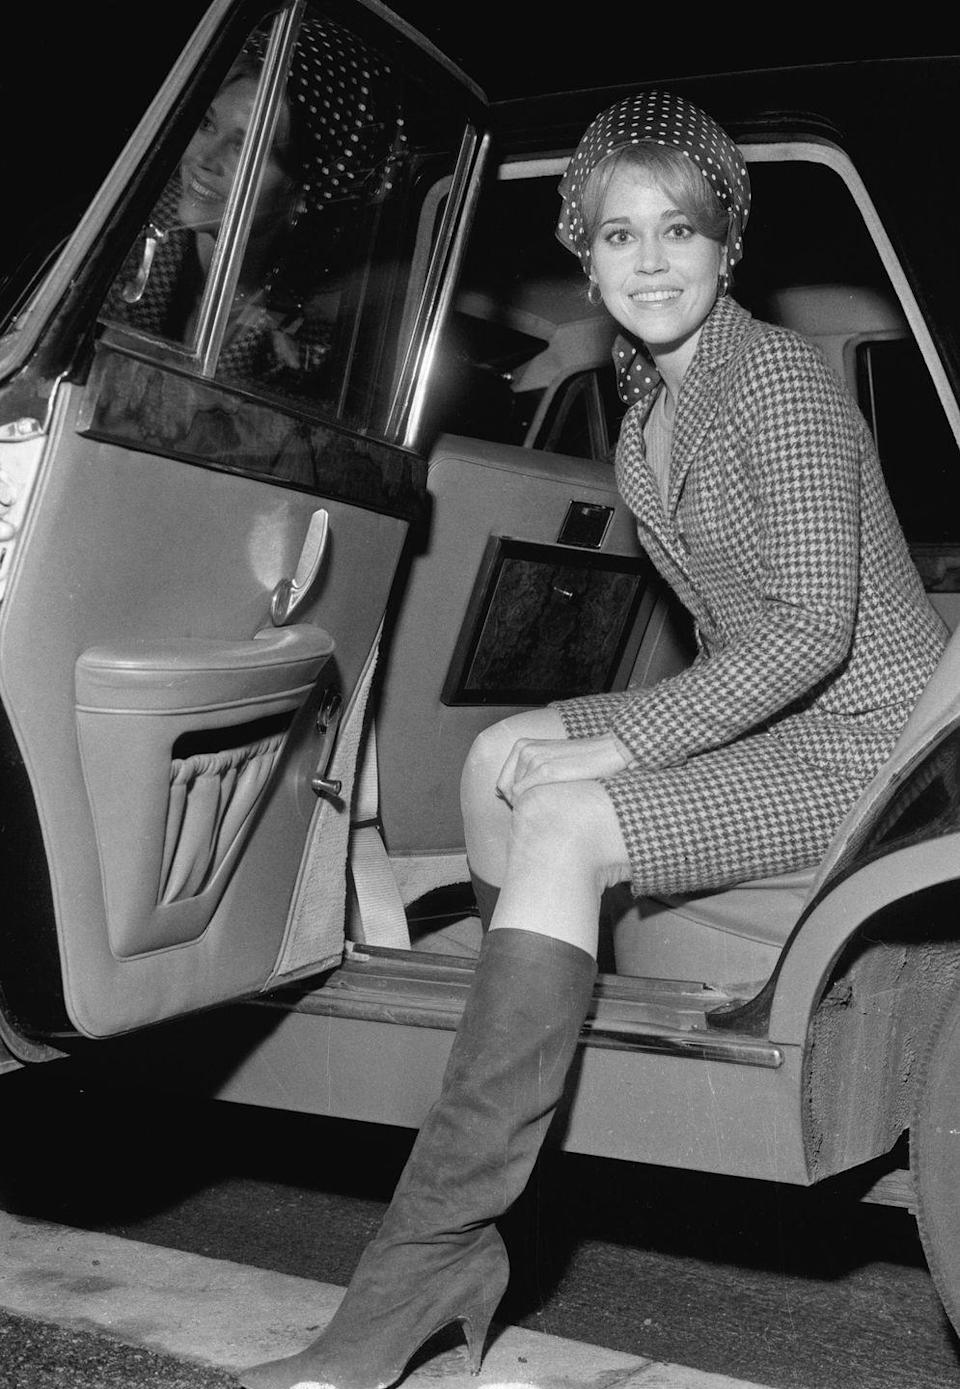 <p>Jane Fonda getting out of her car at London airport (now Heathrow). 23rd January 1965. </p>